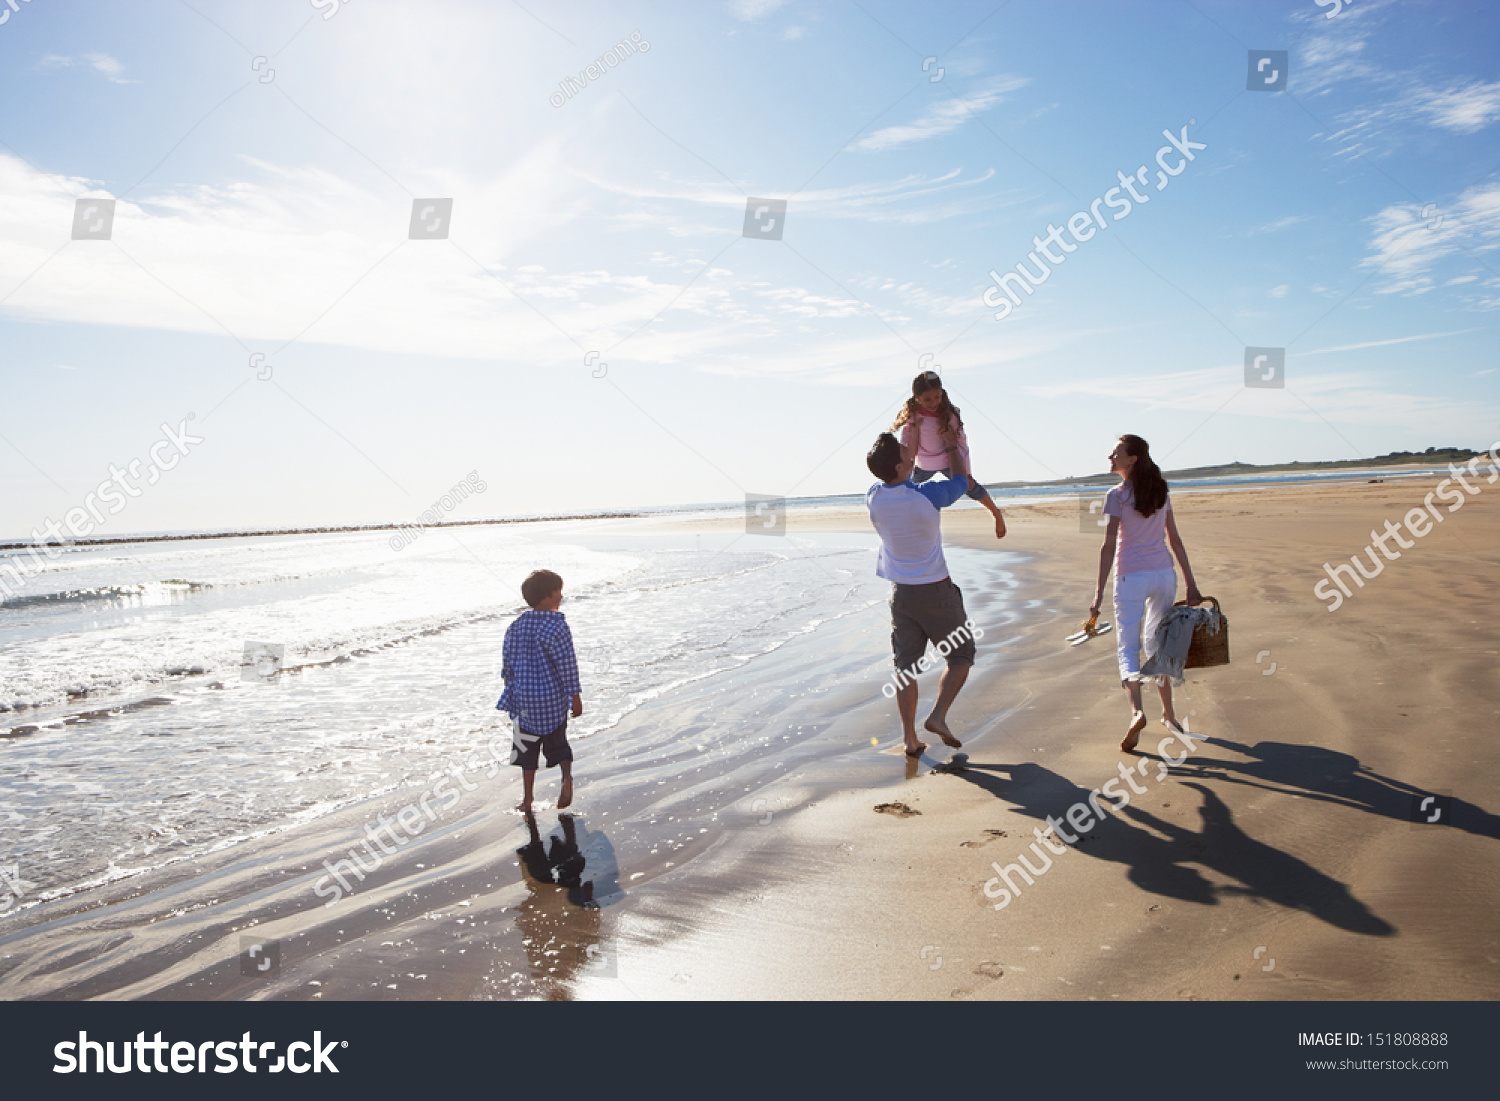 """walking along the beach essay """"once upon a time, there was a wise man who used to go to the ocean to do his writing he had a habit of walking on the beach before he began his work one day, as he was walking along the shore, he looked down the beach and saw a human figure moving like a dancer he smiled to himself at the."""